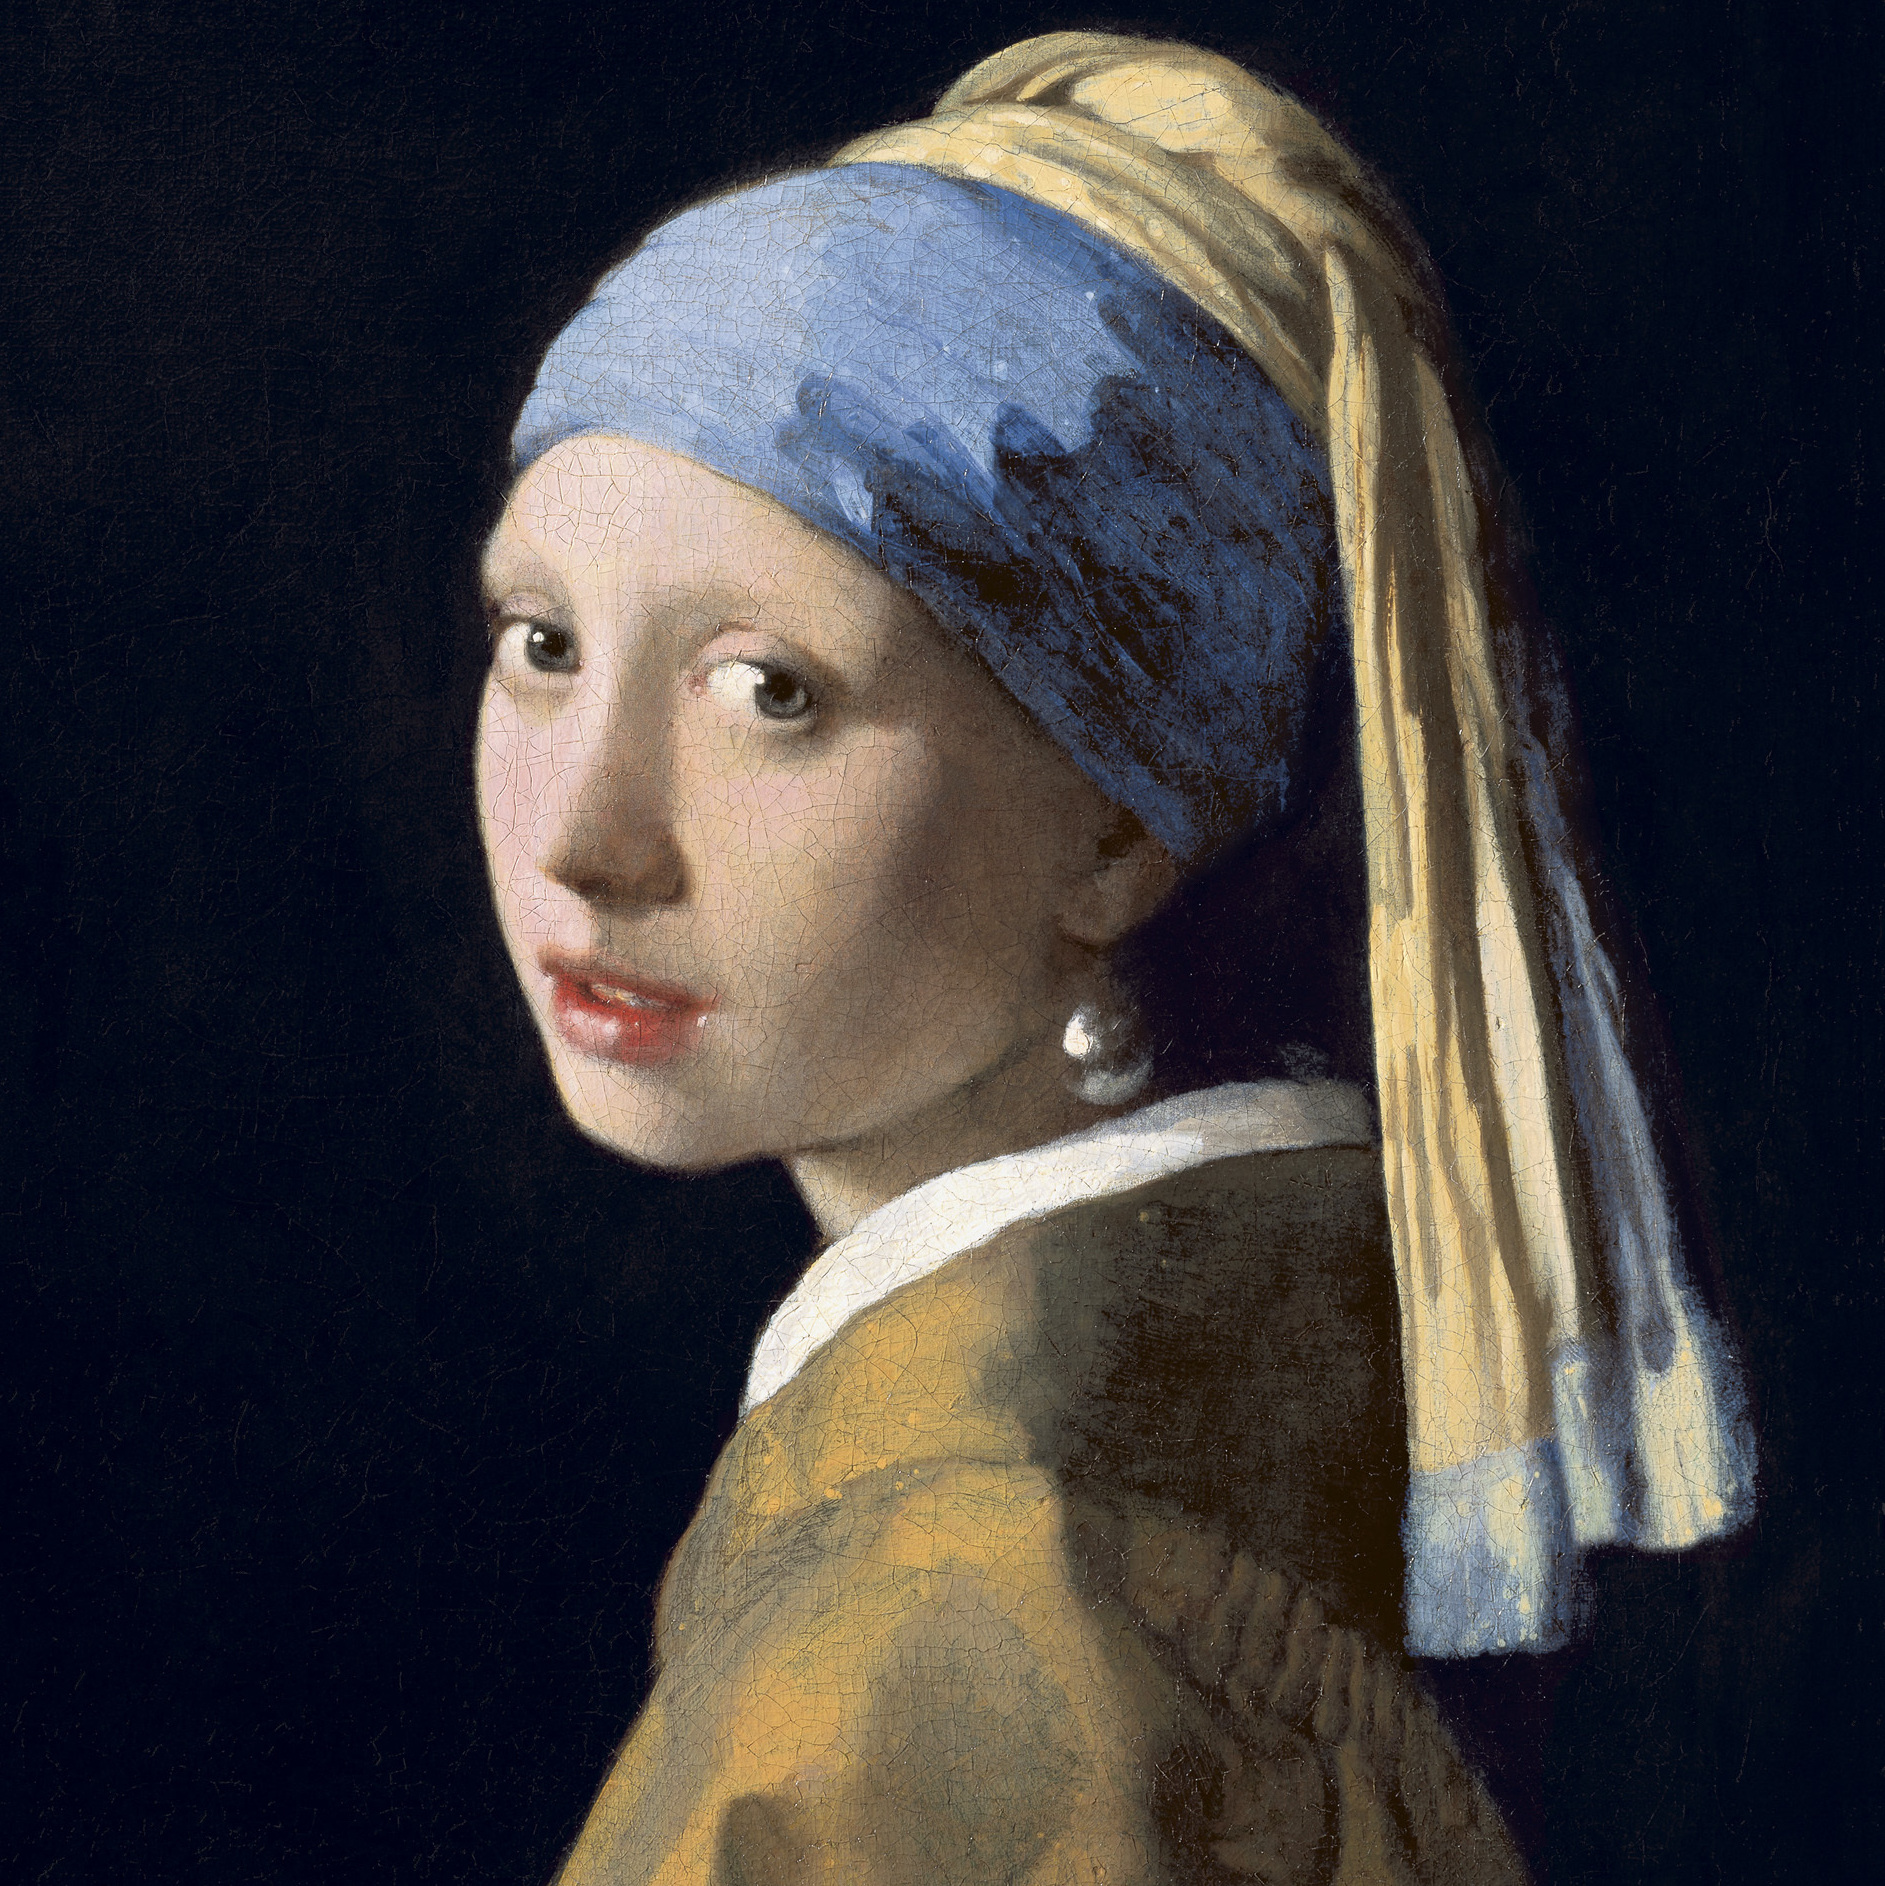 Vermeer's Girl With a Pearl Earring is also showing on the West Coast, at the de Young Fine Arts Museum in San Francisco, until June 2.